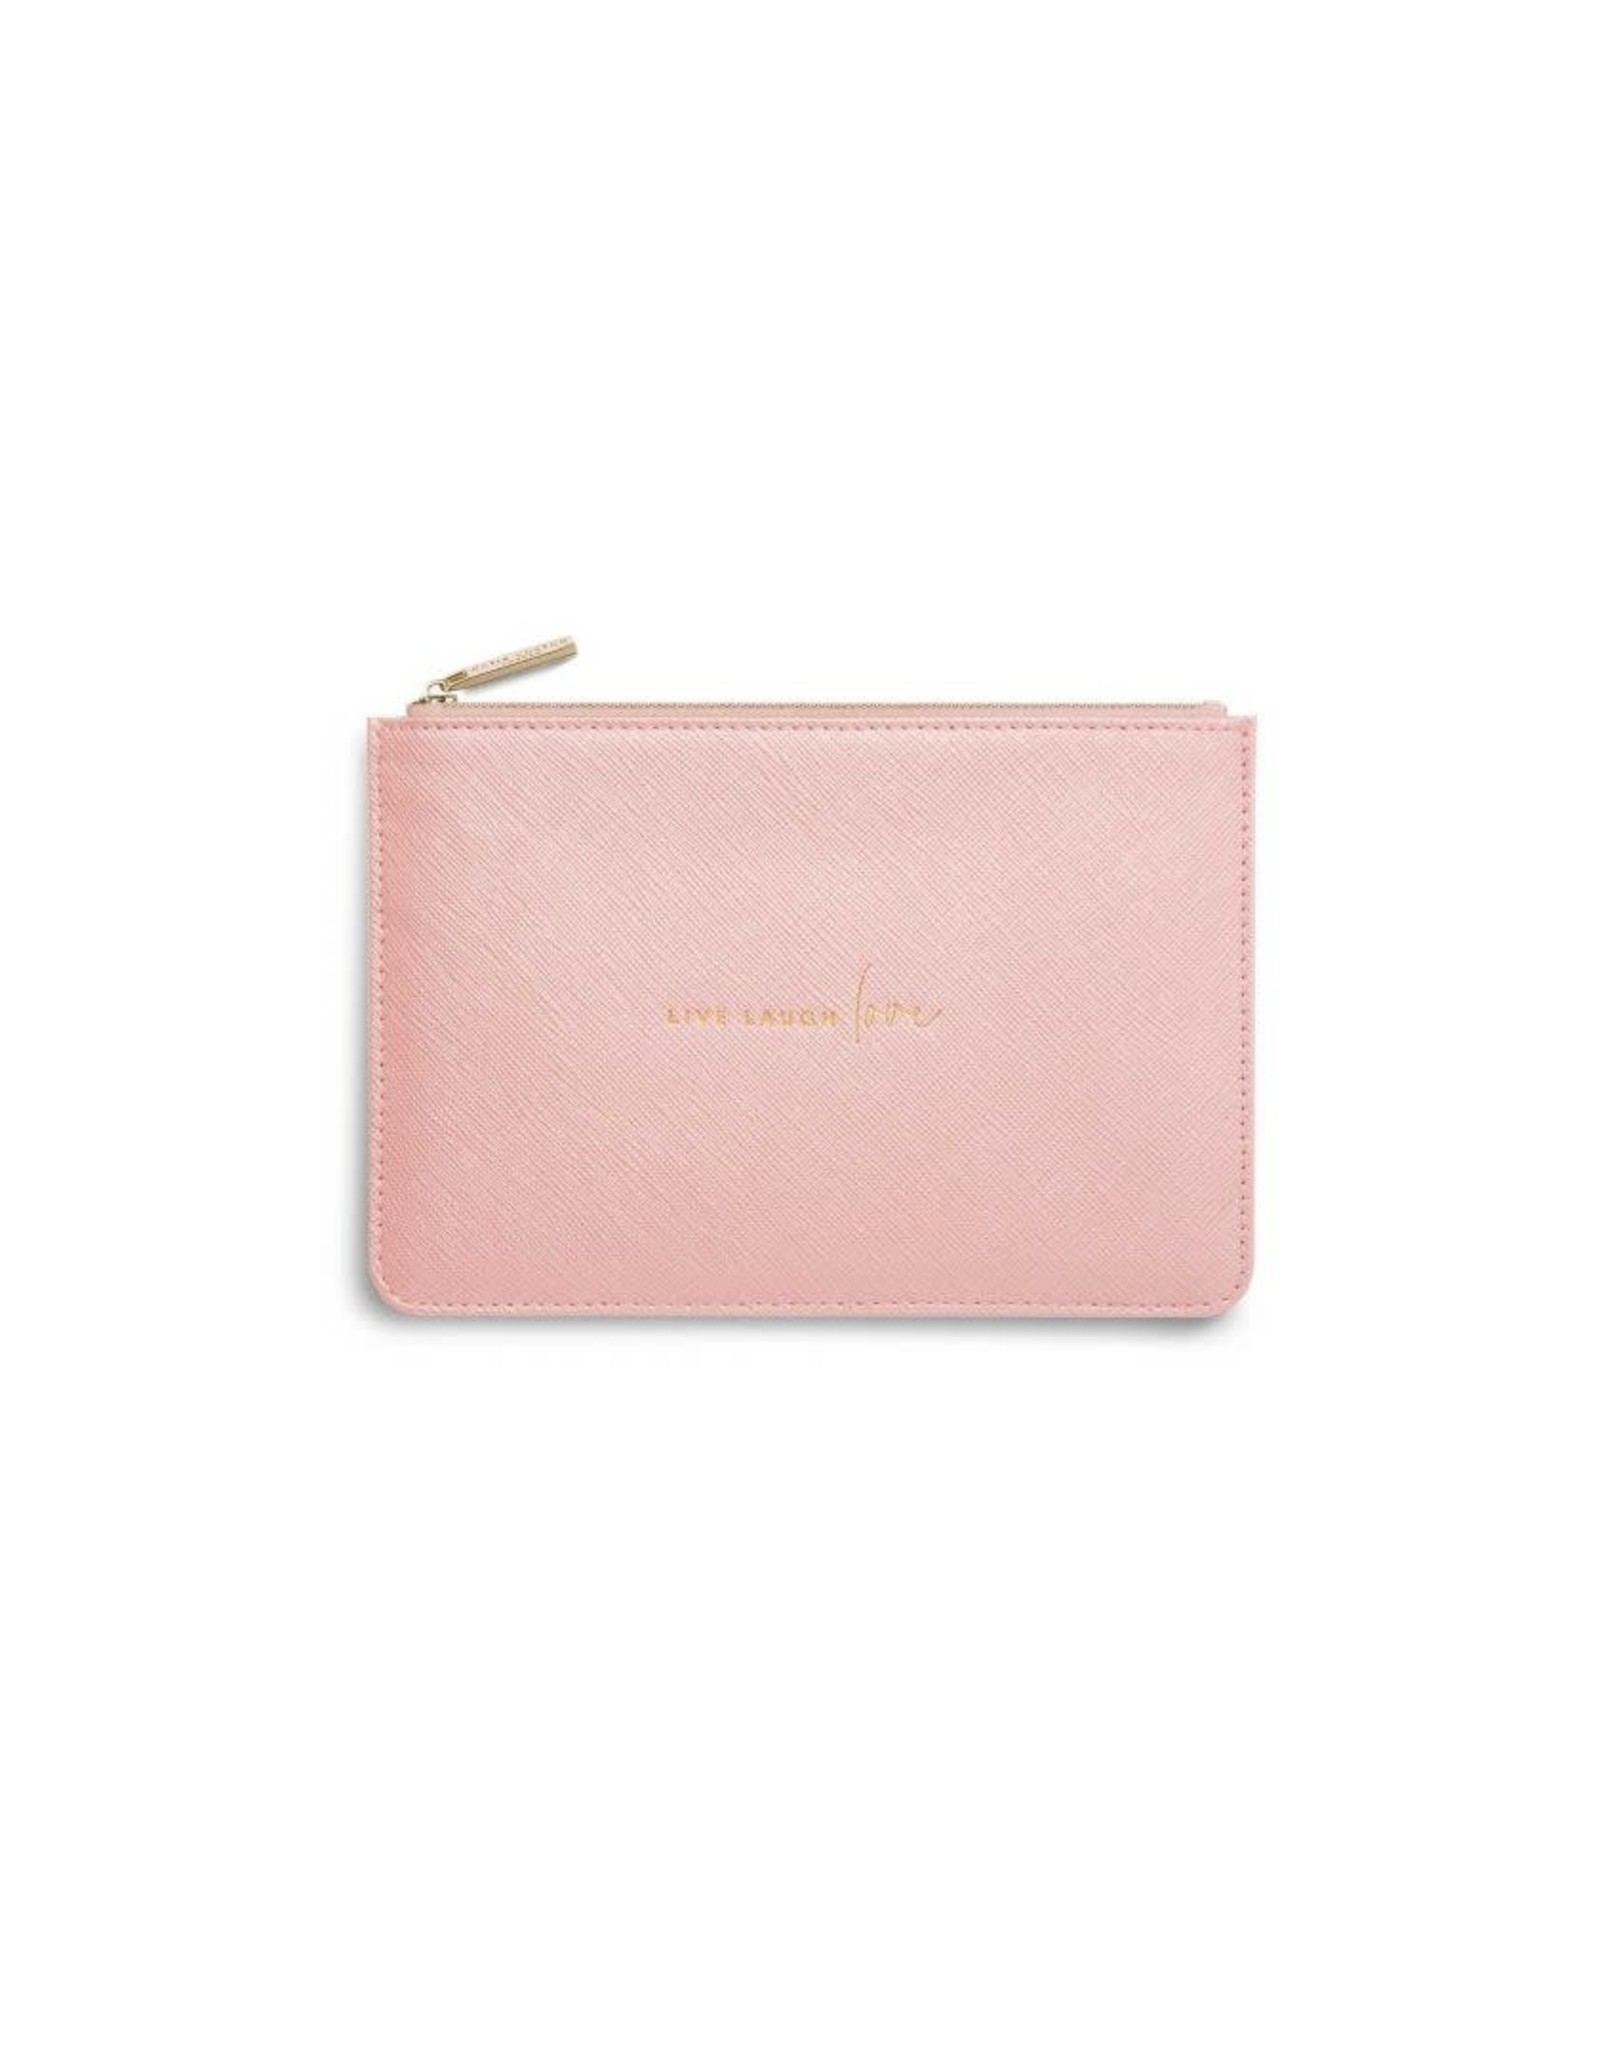 Katie Loxton Perfect Pouch Giftset - Live Laugh Love